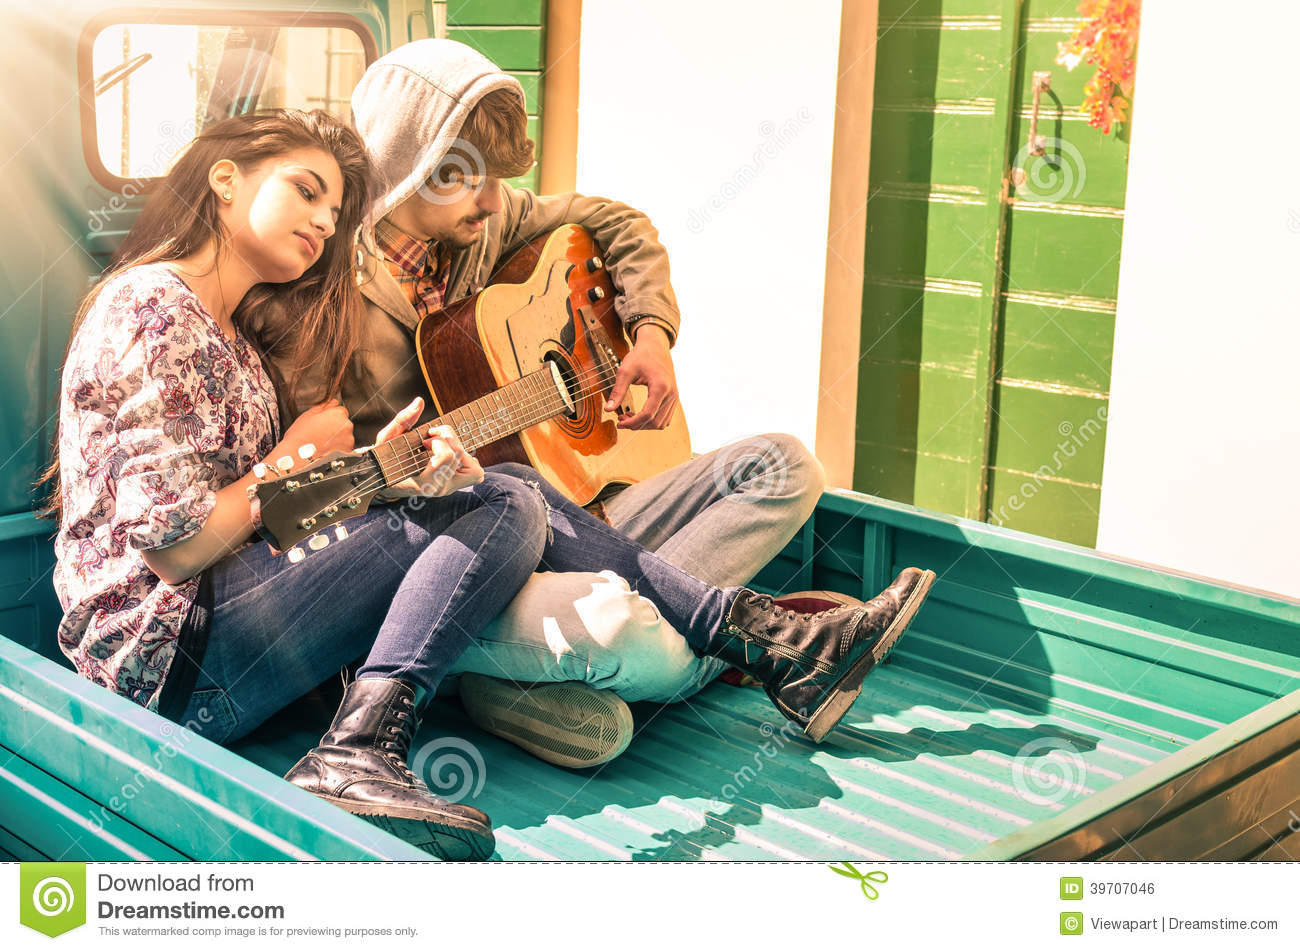 Cute Couples Wallpaper Free Download Romantic Young Couple Of Lovers Playing Guitar Outdoors